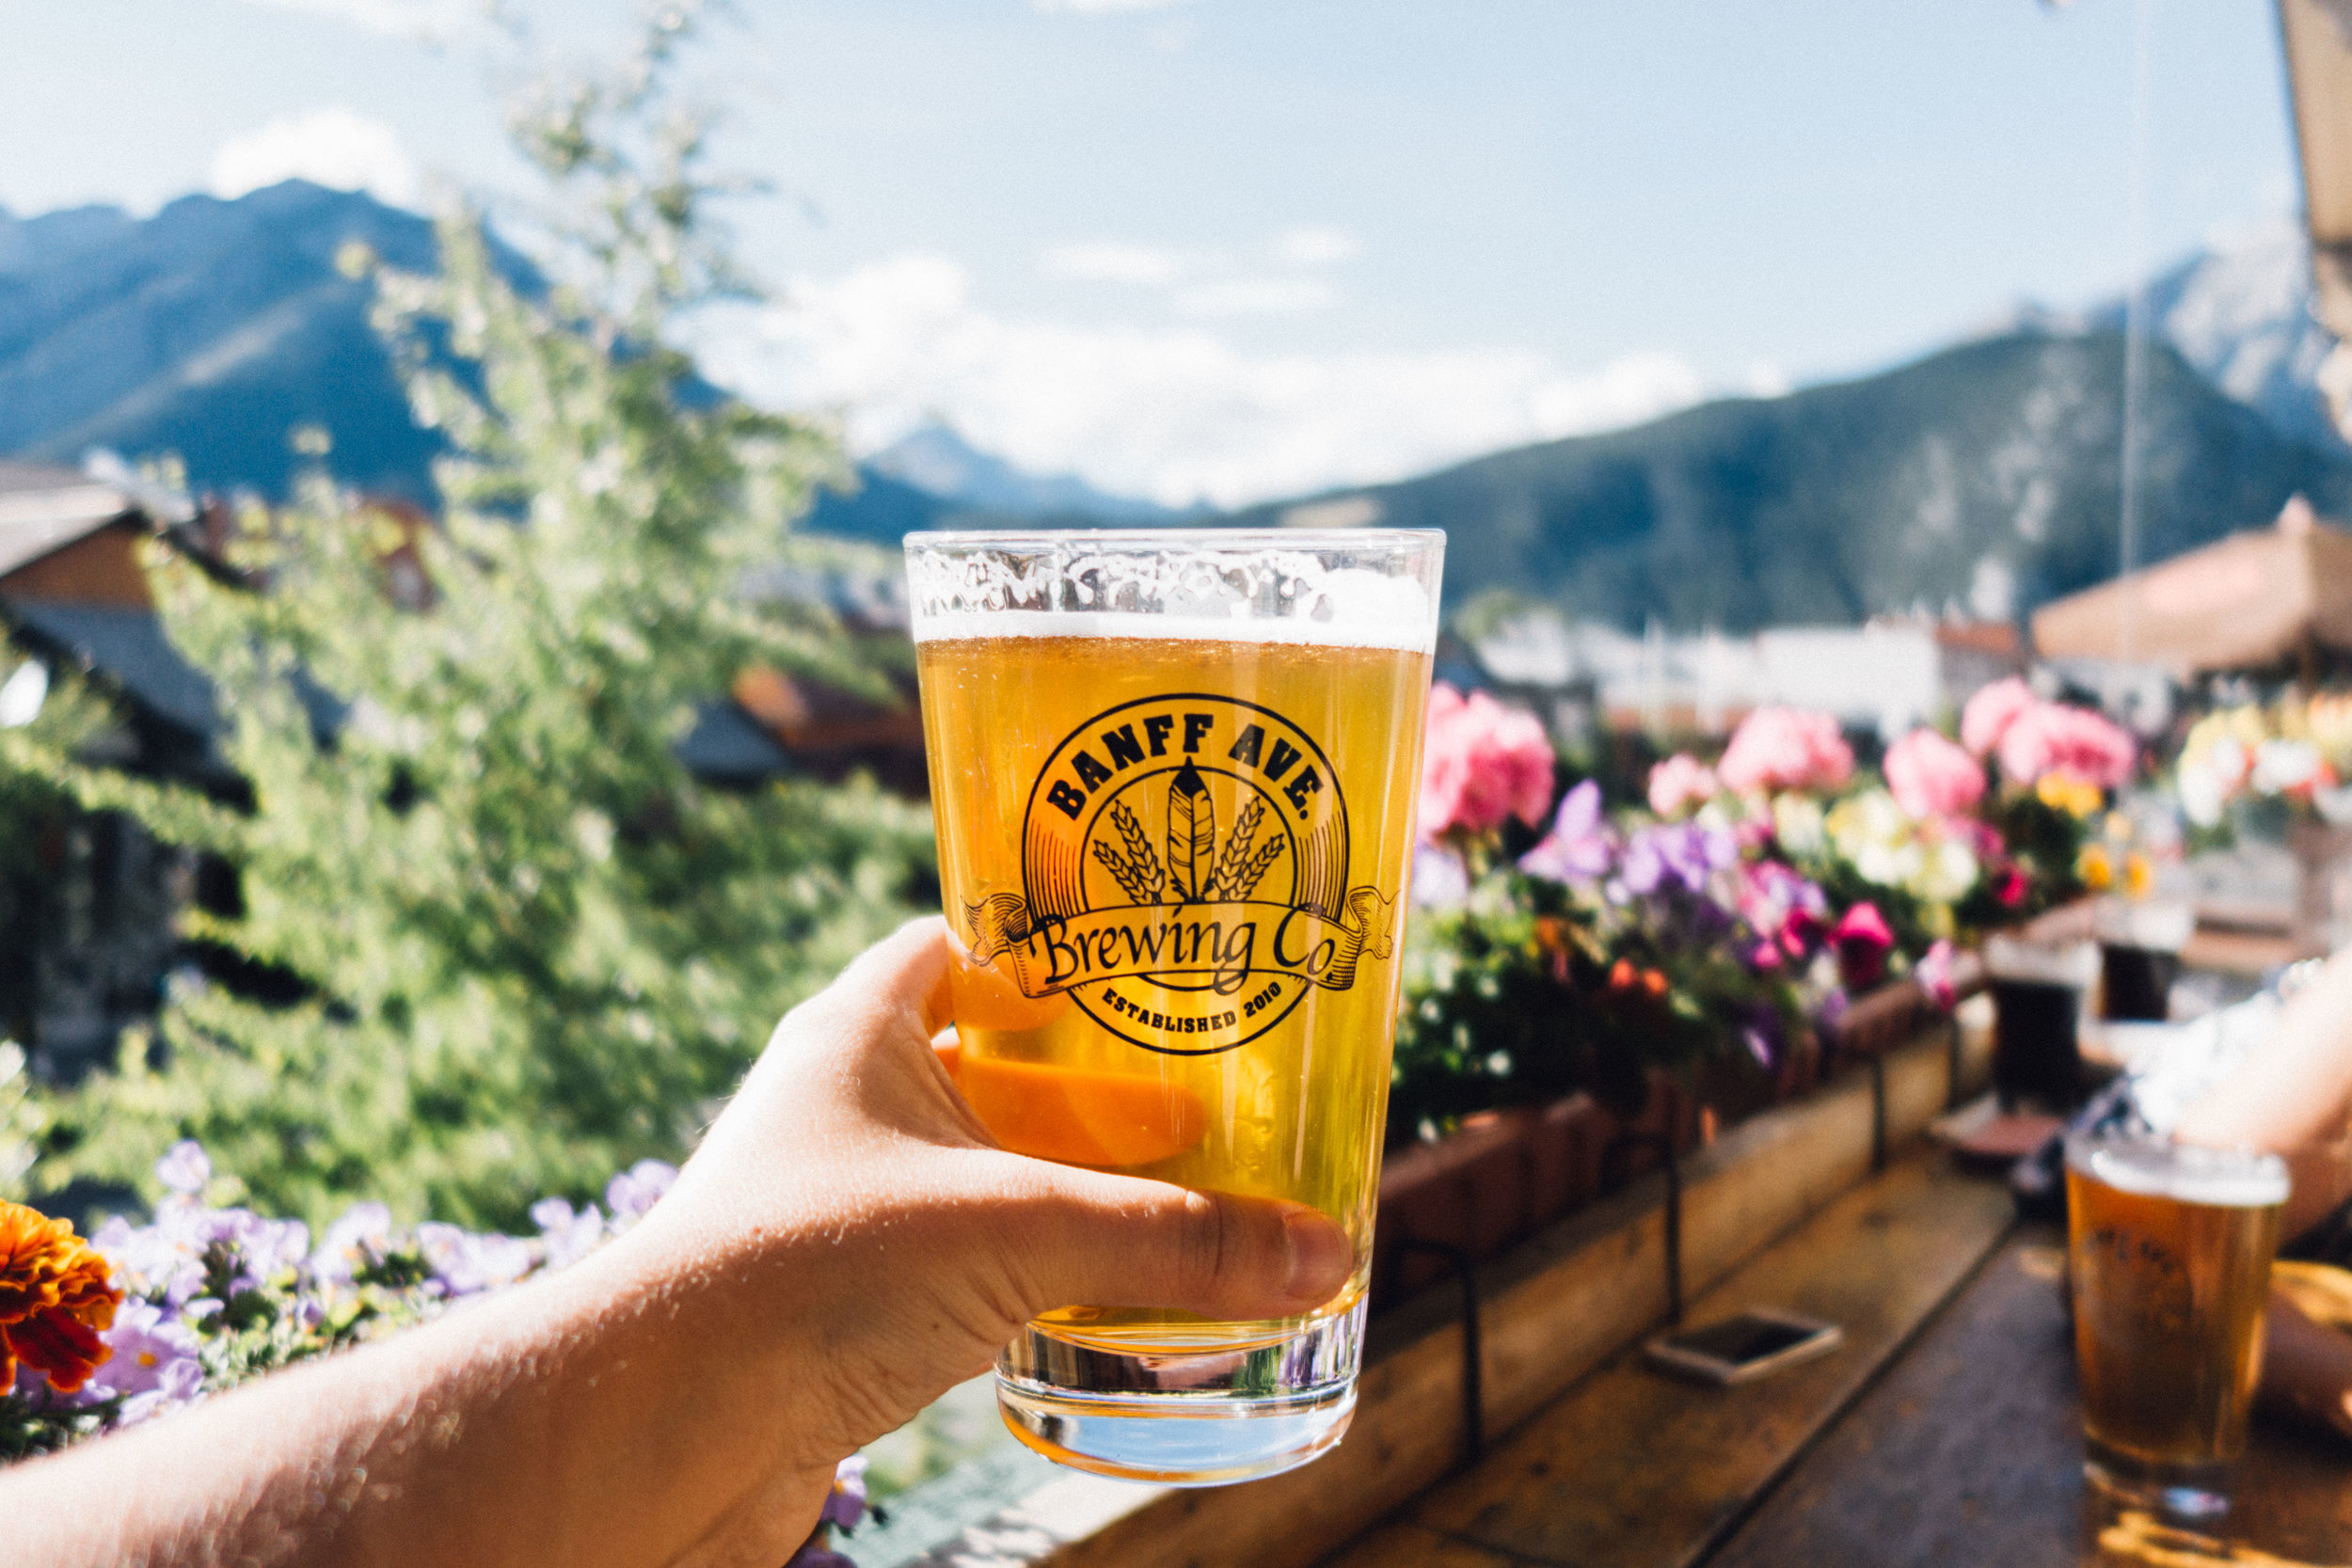 Banff Ave Brewing Co Banff Voyage Collective Billie Norman